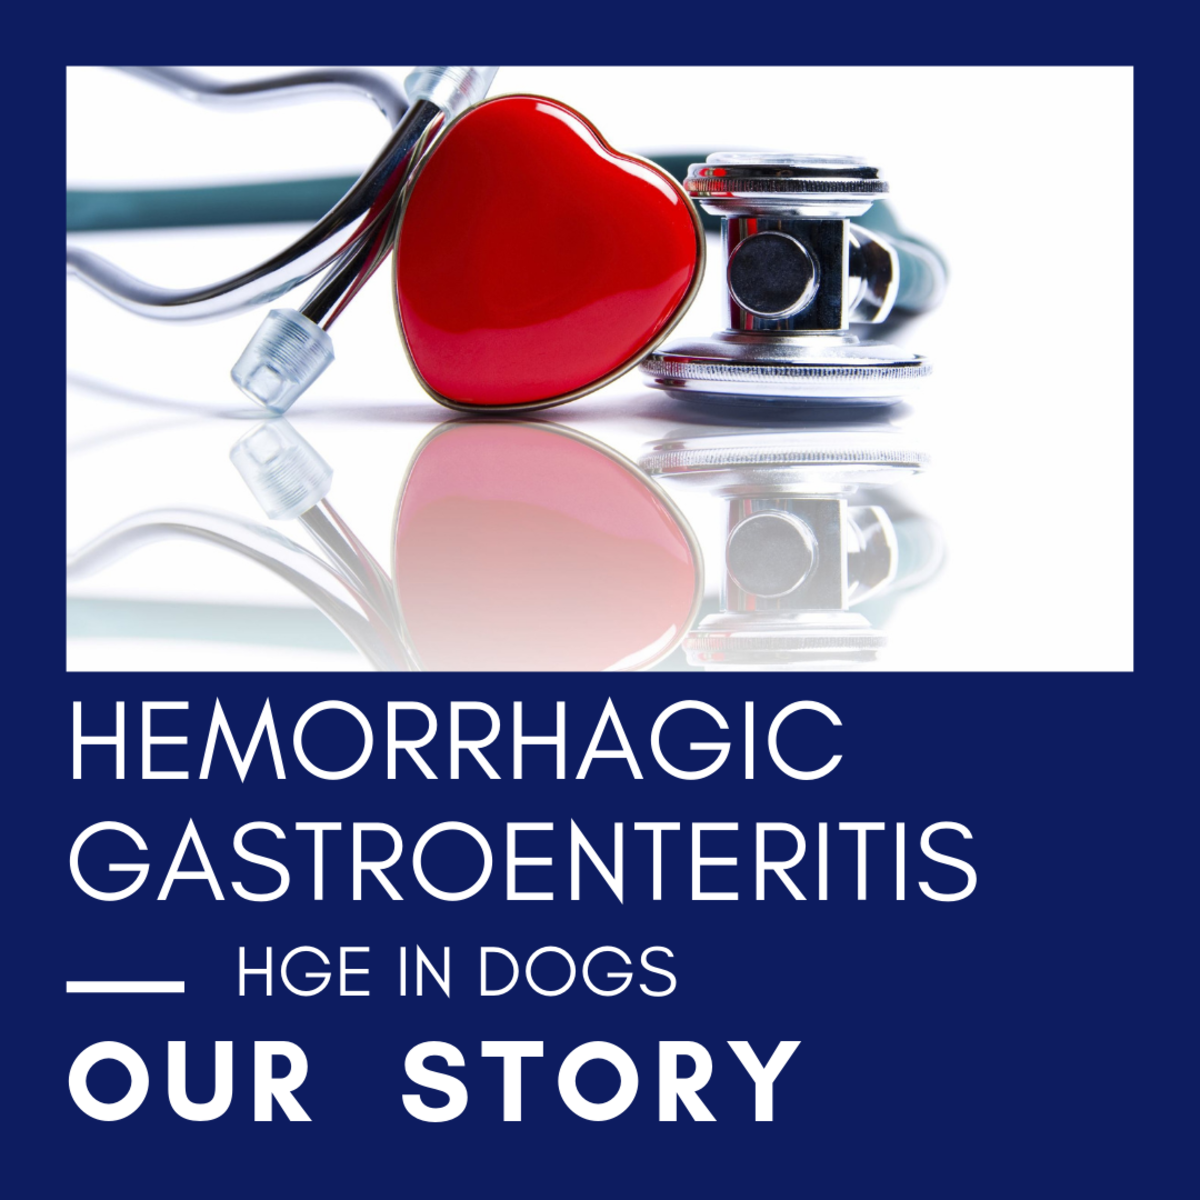 Hemorrhagic Gastroenteritis or HGE: A Dangerous Canine Intestinal Disease